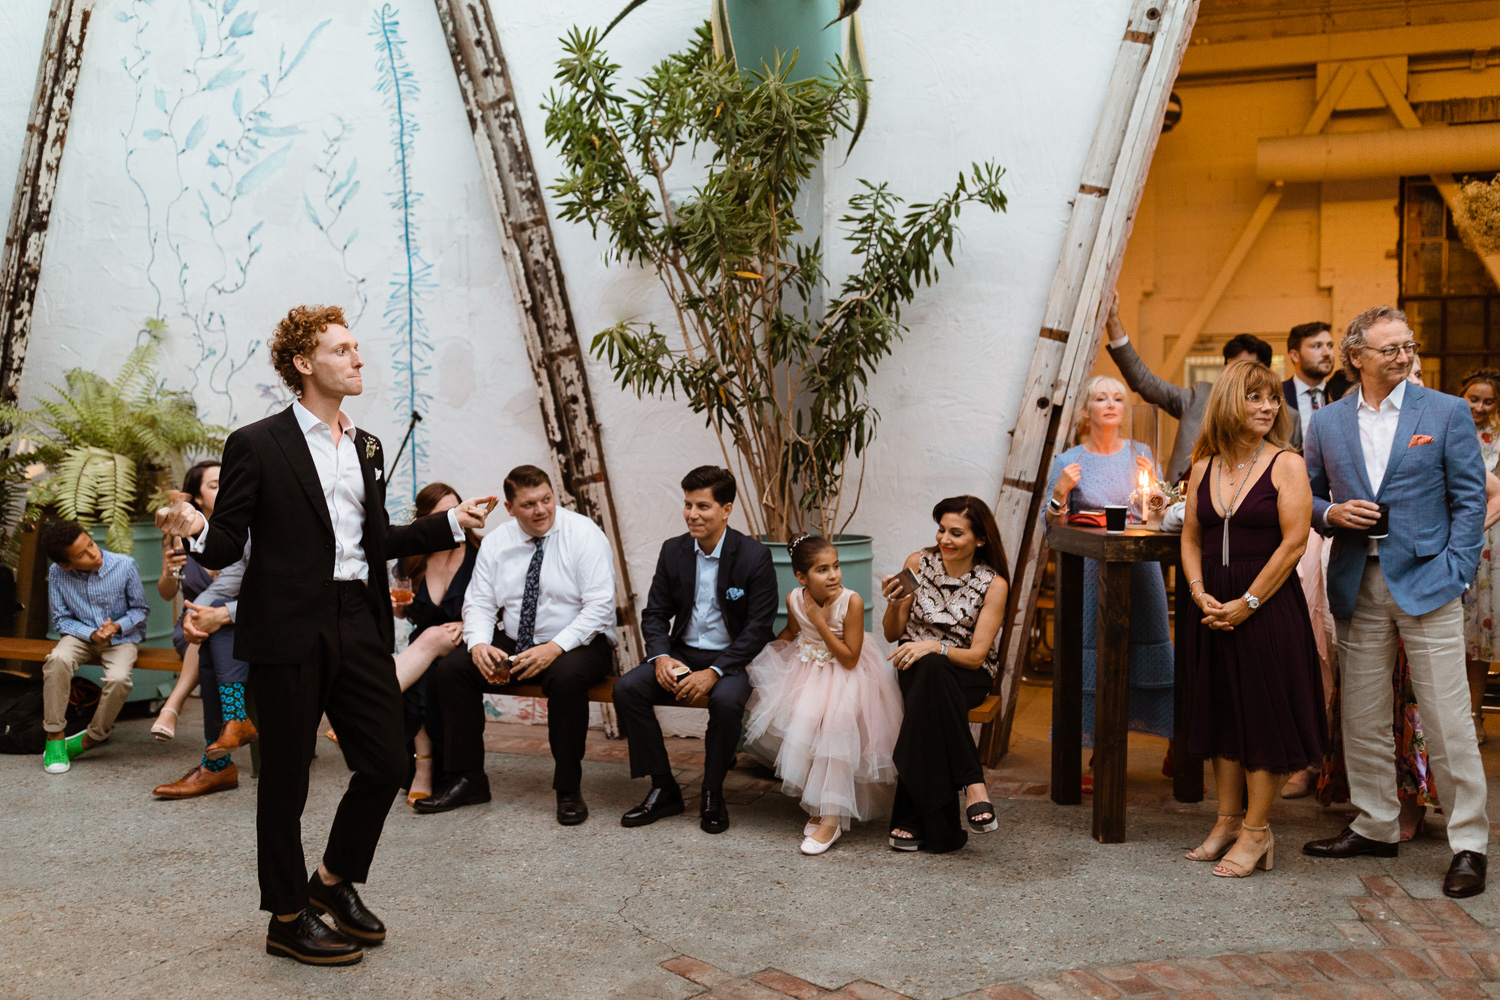 156-Grass-Room-DTLA-Los-Angeles-Real-Wedding-Photos-Ryanne-Hollies-Photography-210.JPG